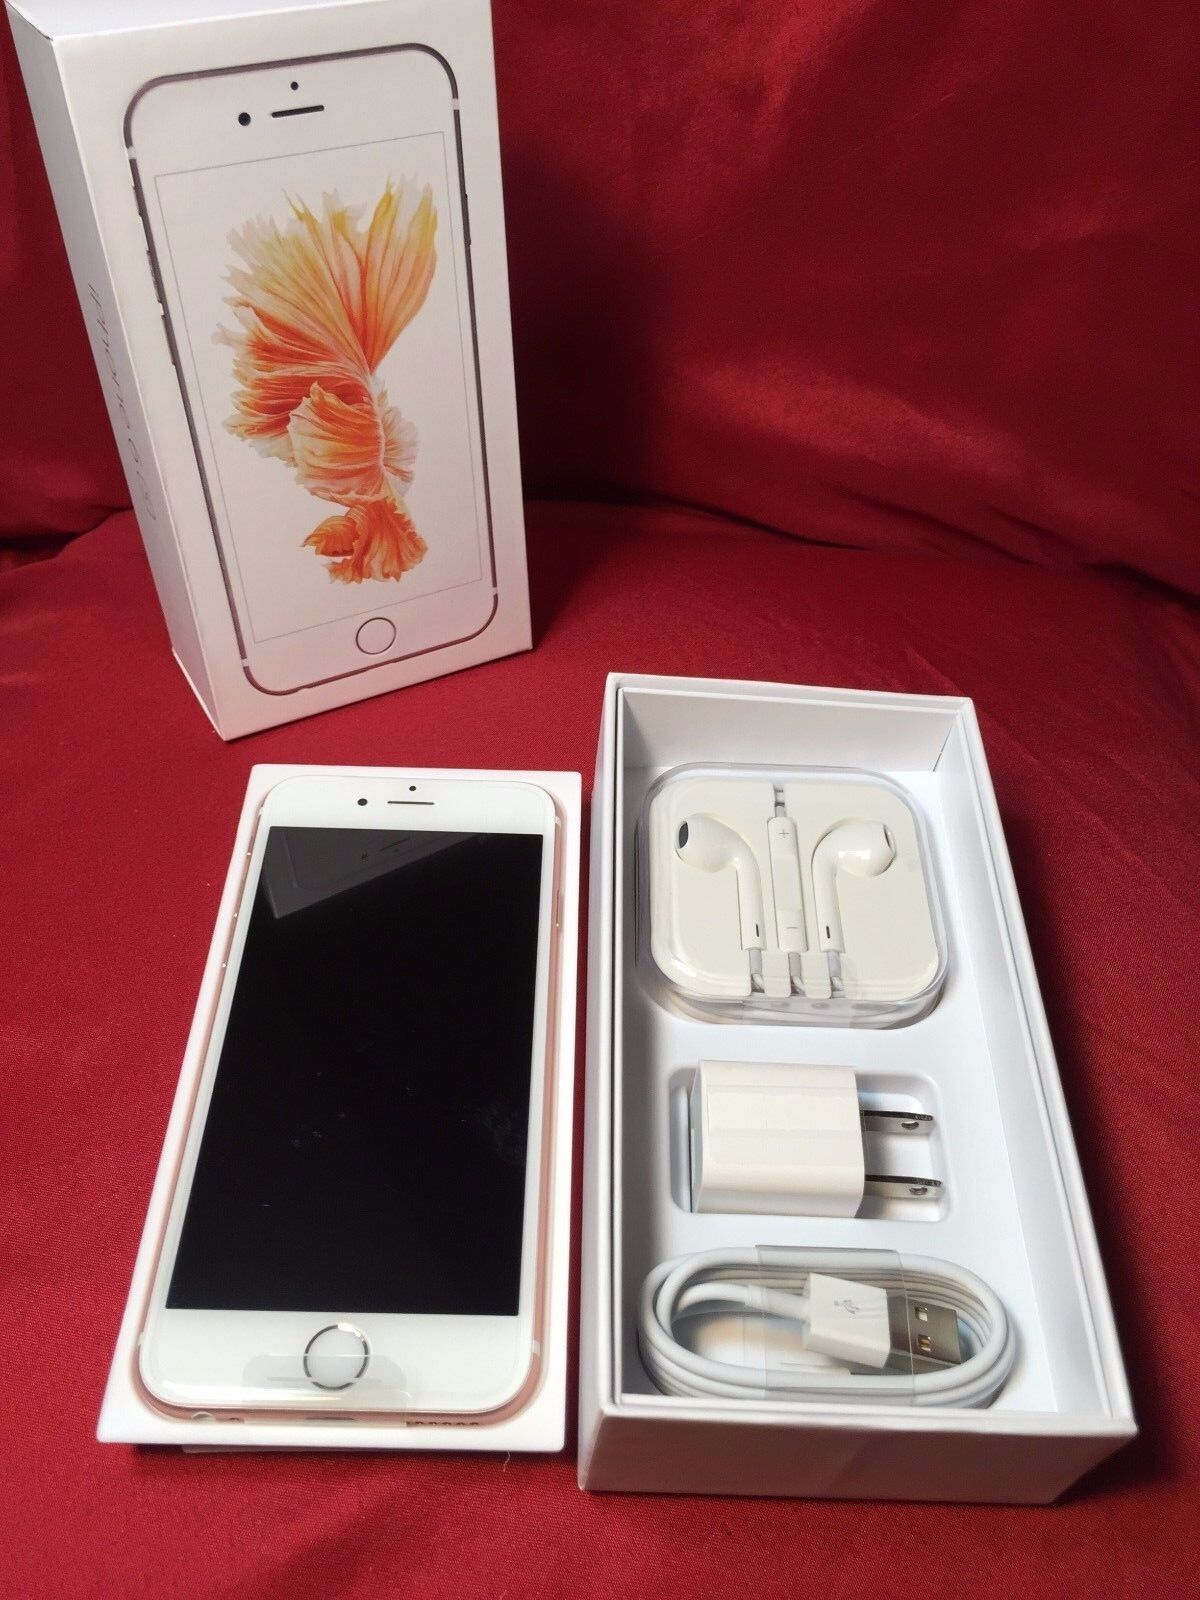 NEW OTHER Apple iPhone 6S ~ (Factory Unlocked) (T-Mobile) (AT&T)